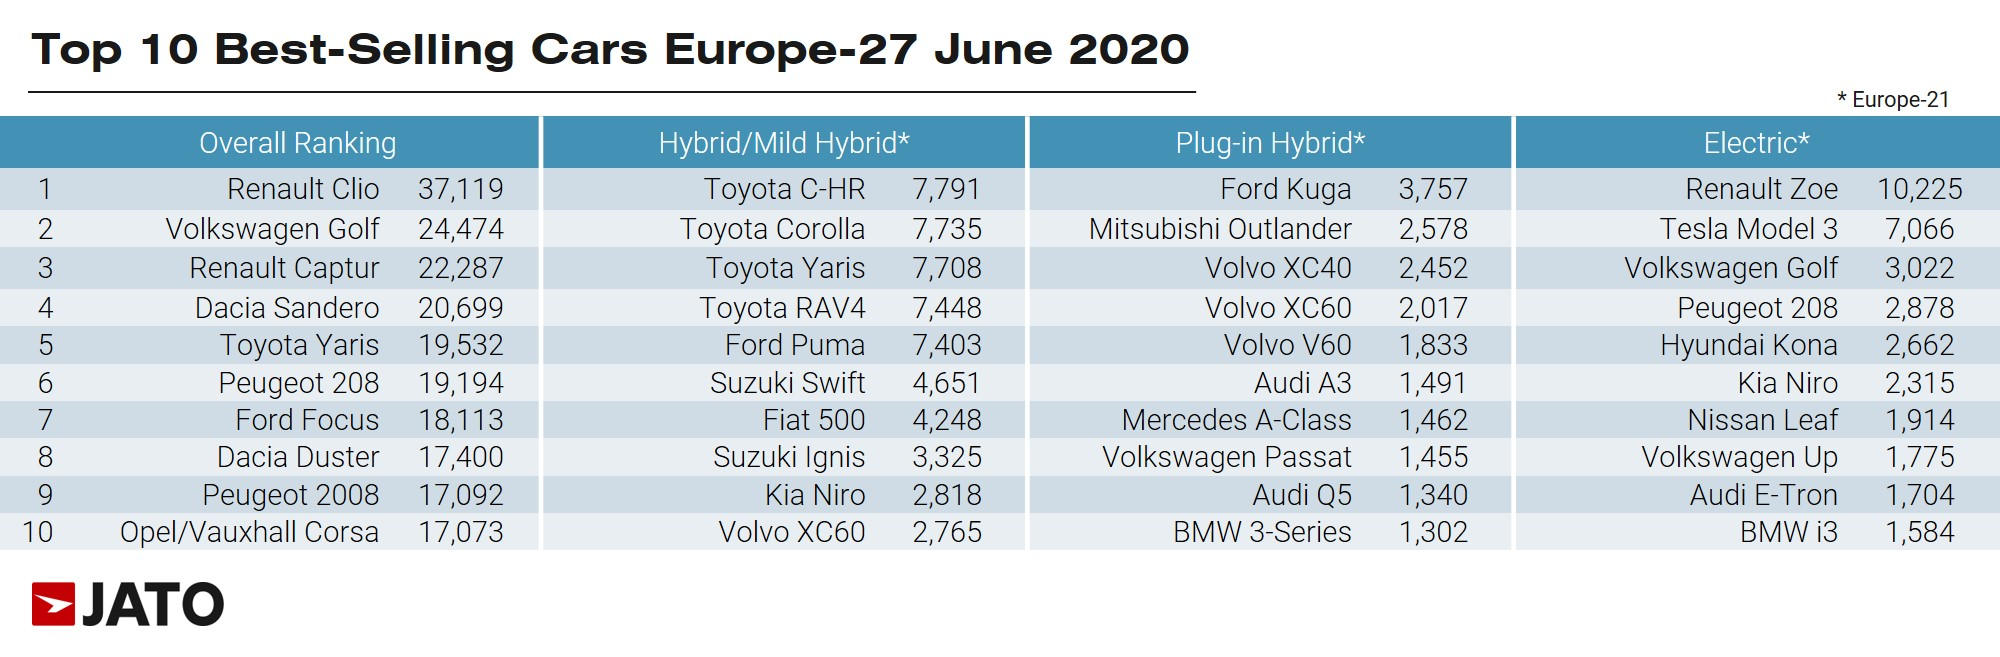 JATO table - Top Best Selling Cars June 2020